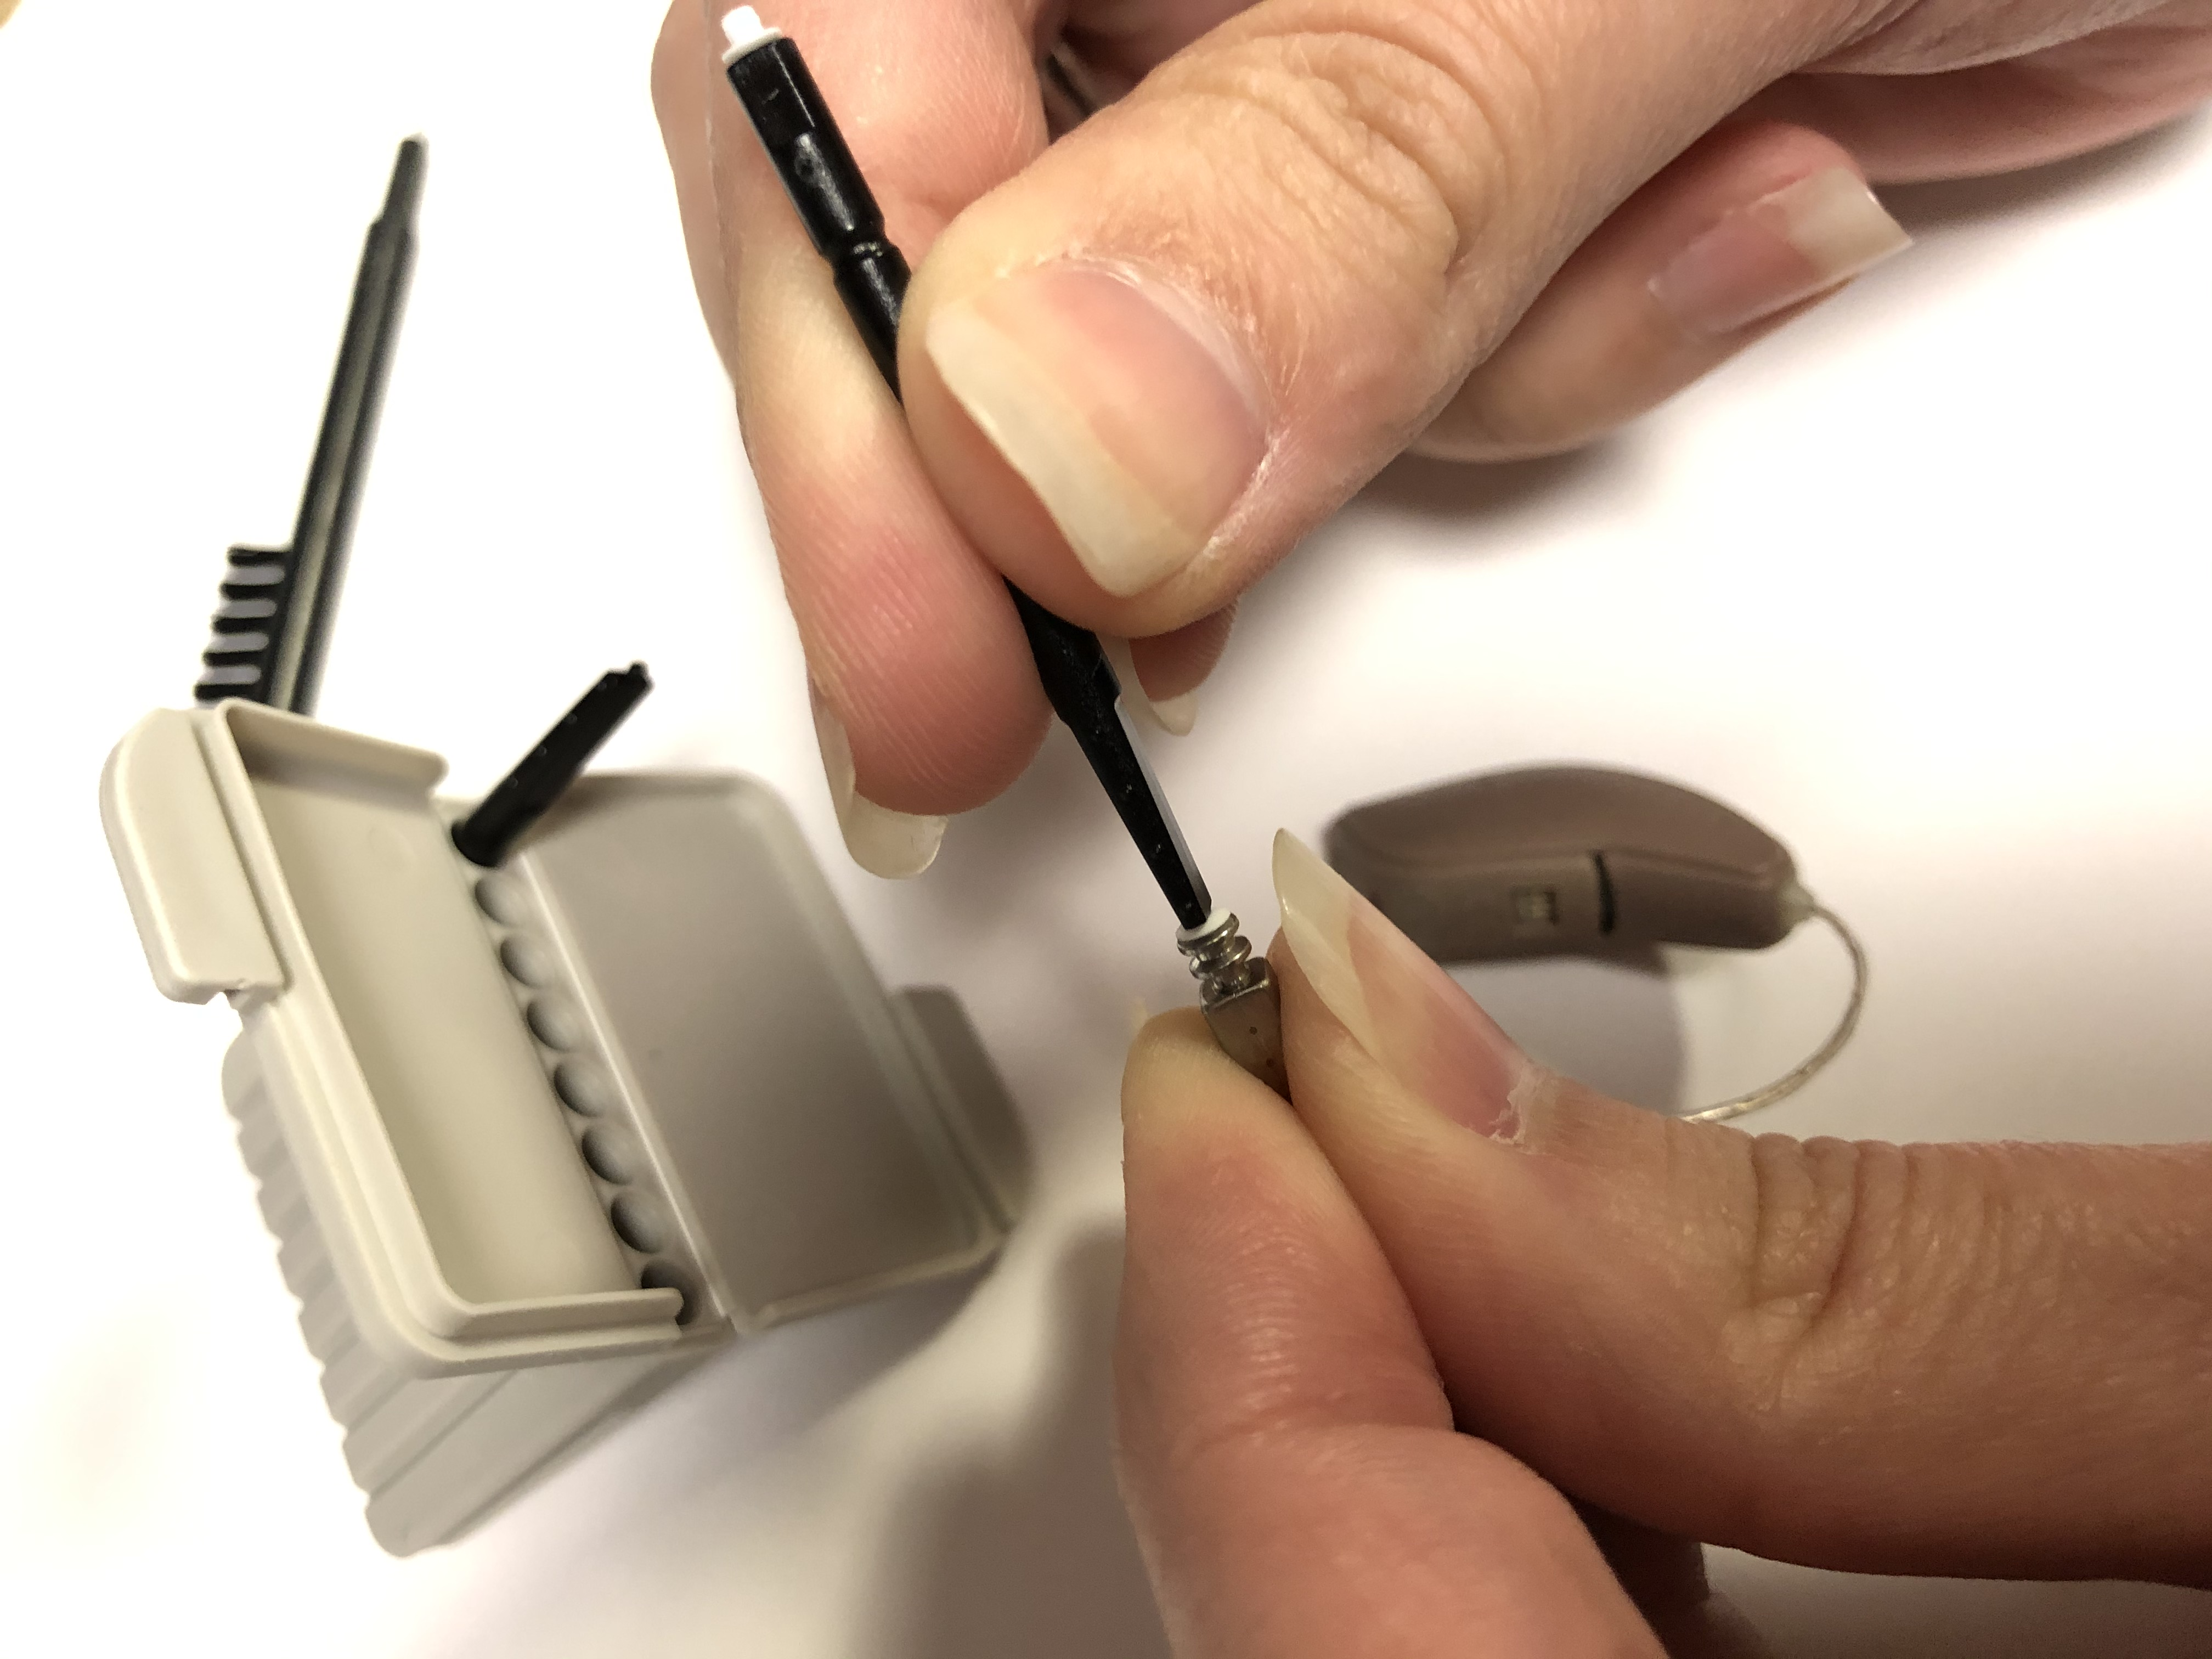 Changing Hearing Aid Filters